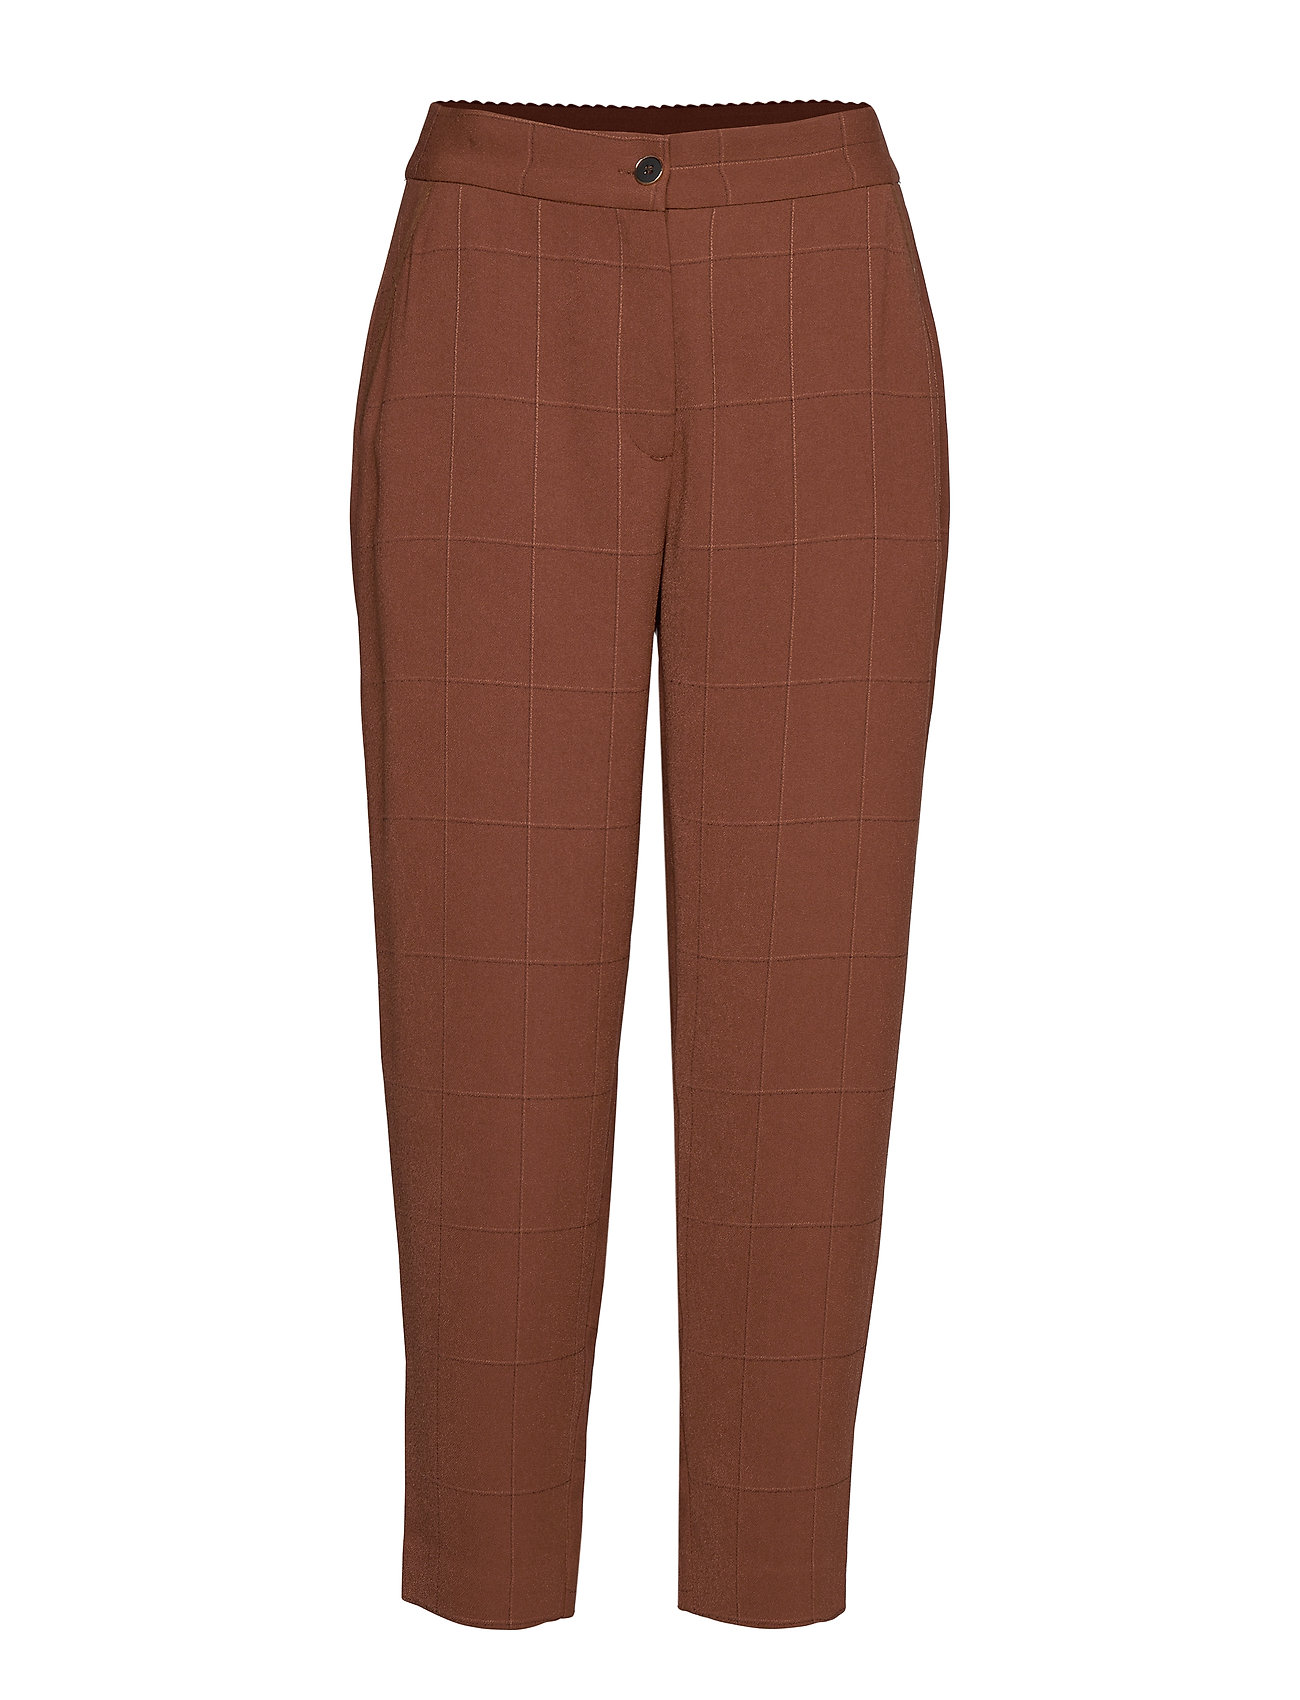 Coster Copenhagen Pants w. elasticband - Sille fit - CHOCOLATE NUT